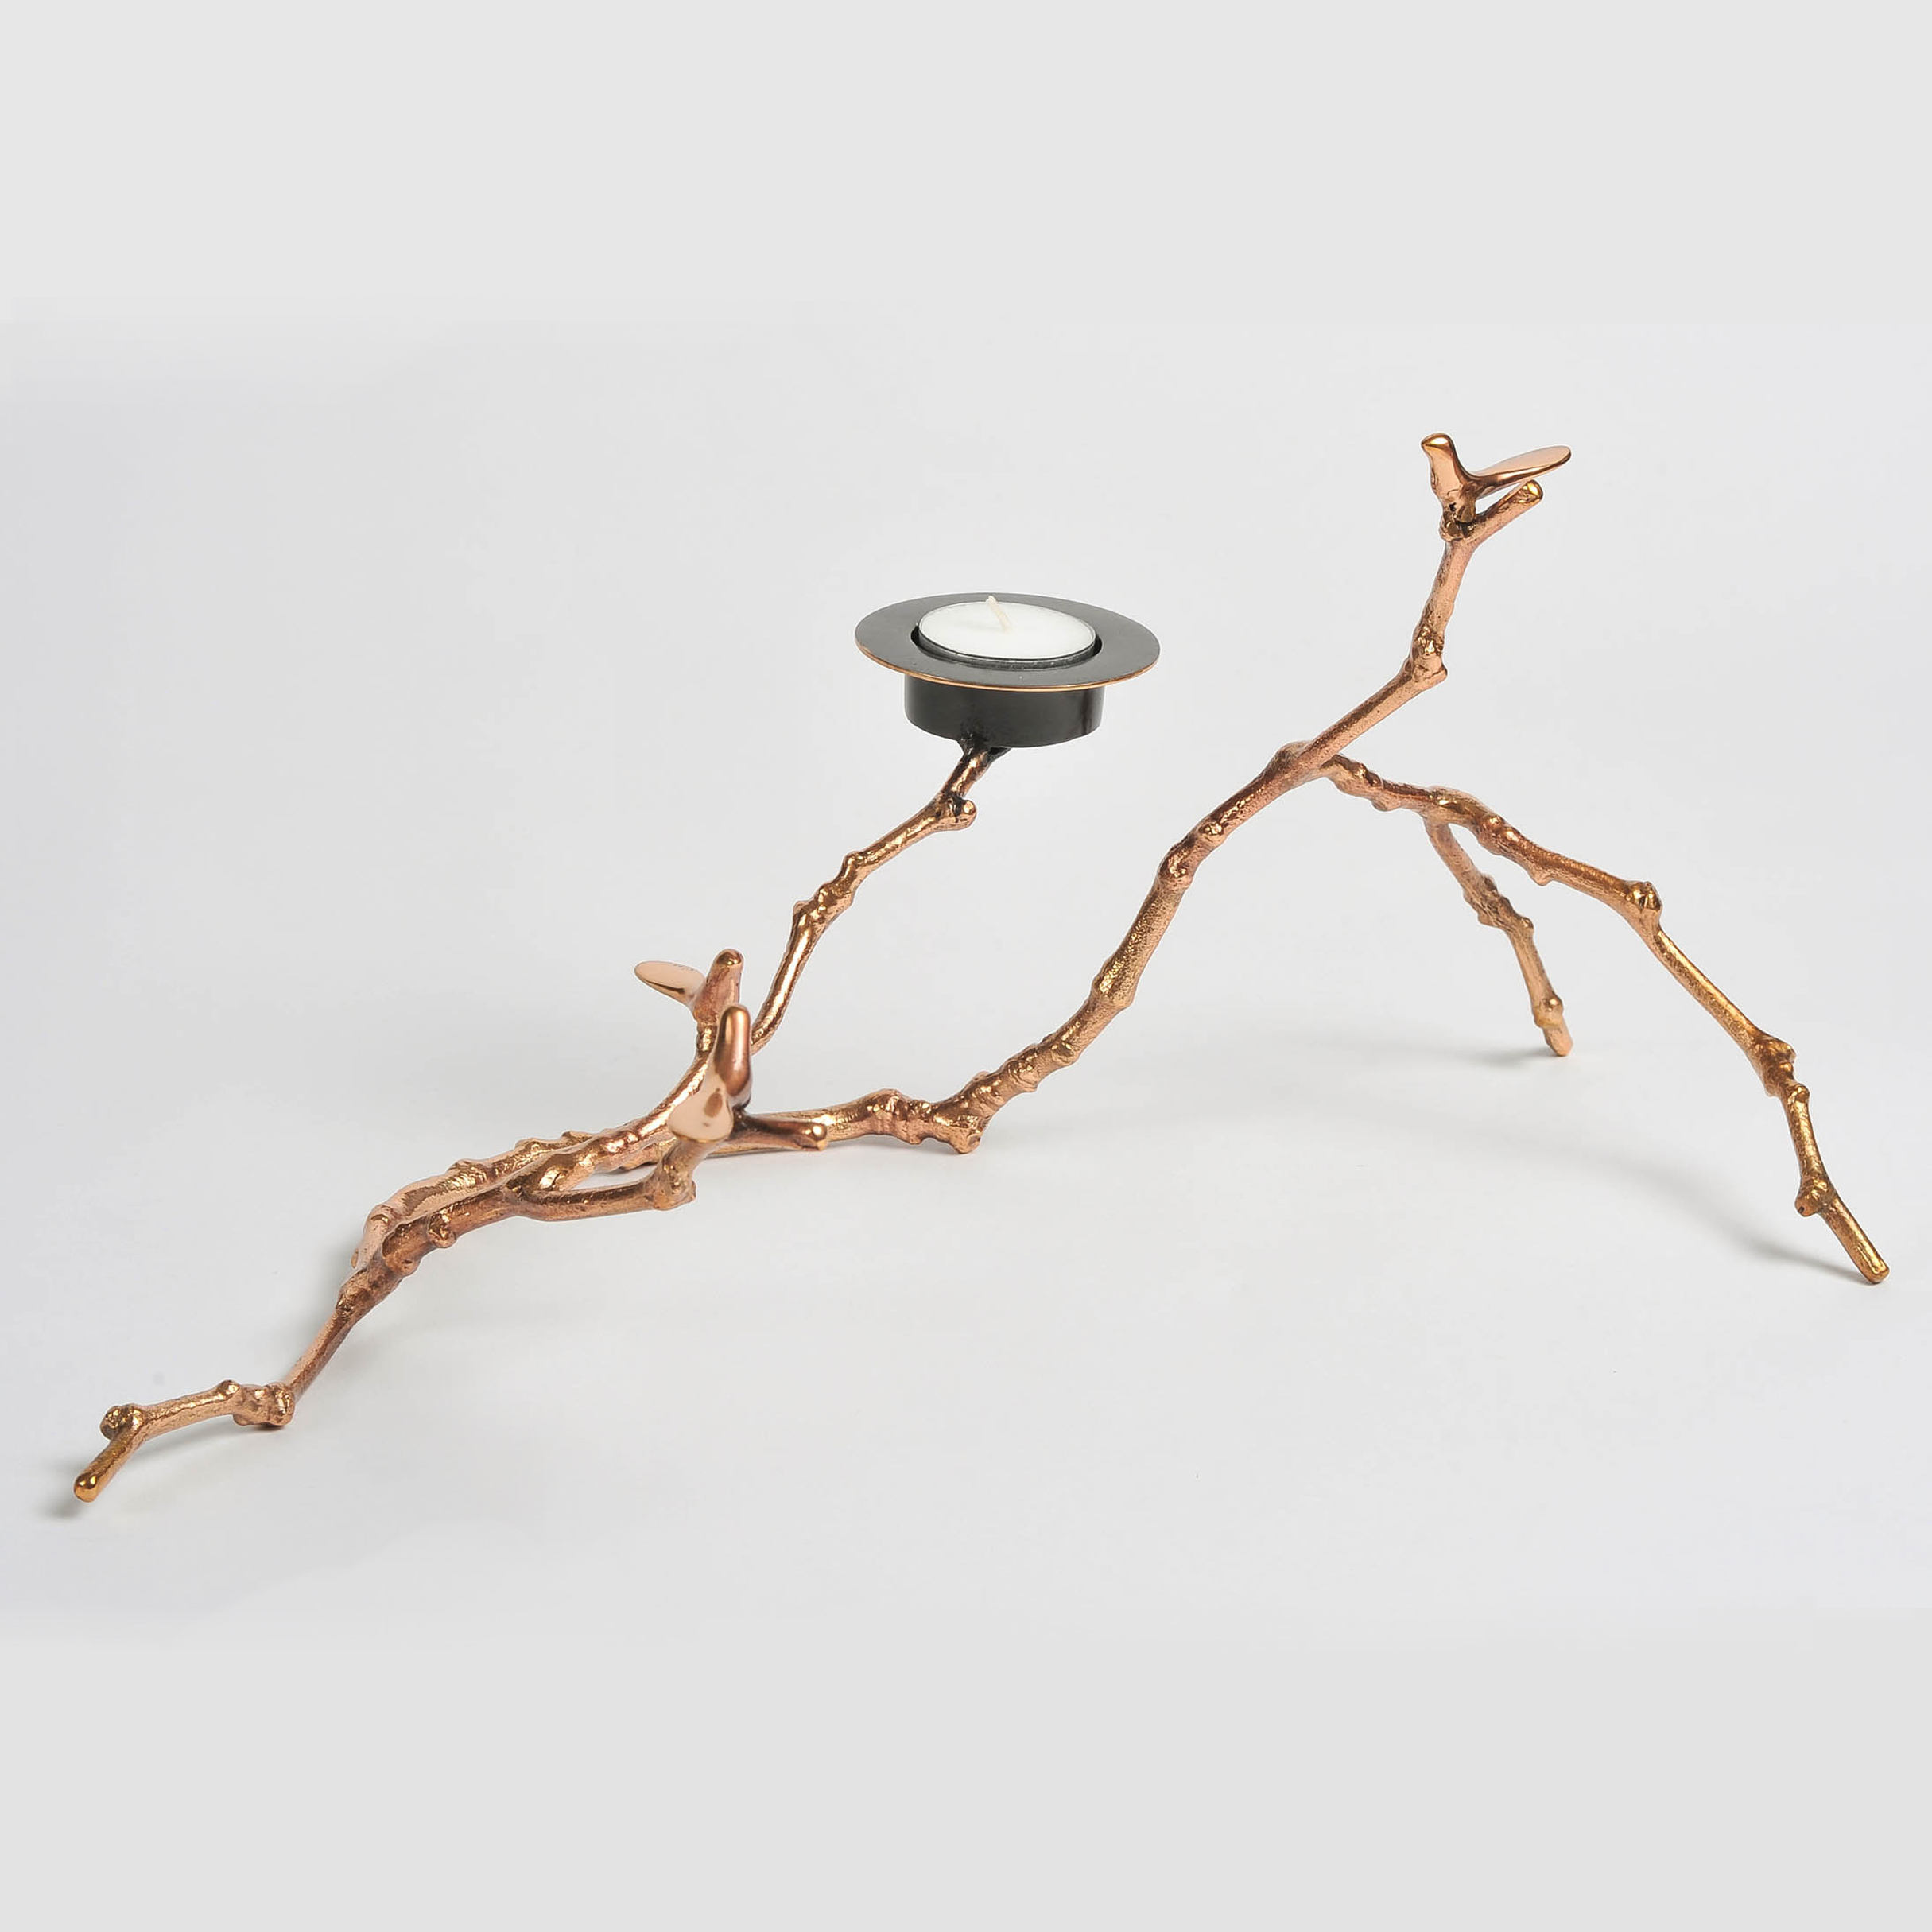 The image for Valerie Wade Twig Candle Holder Copper 03